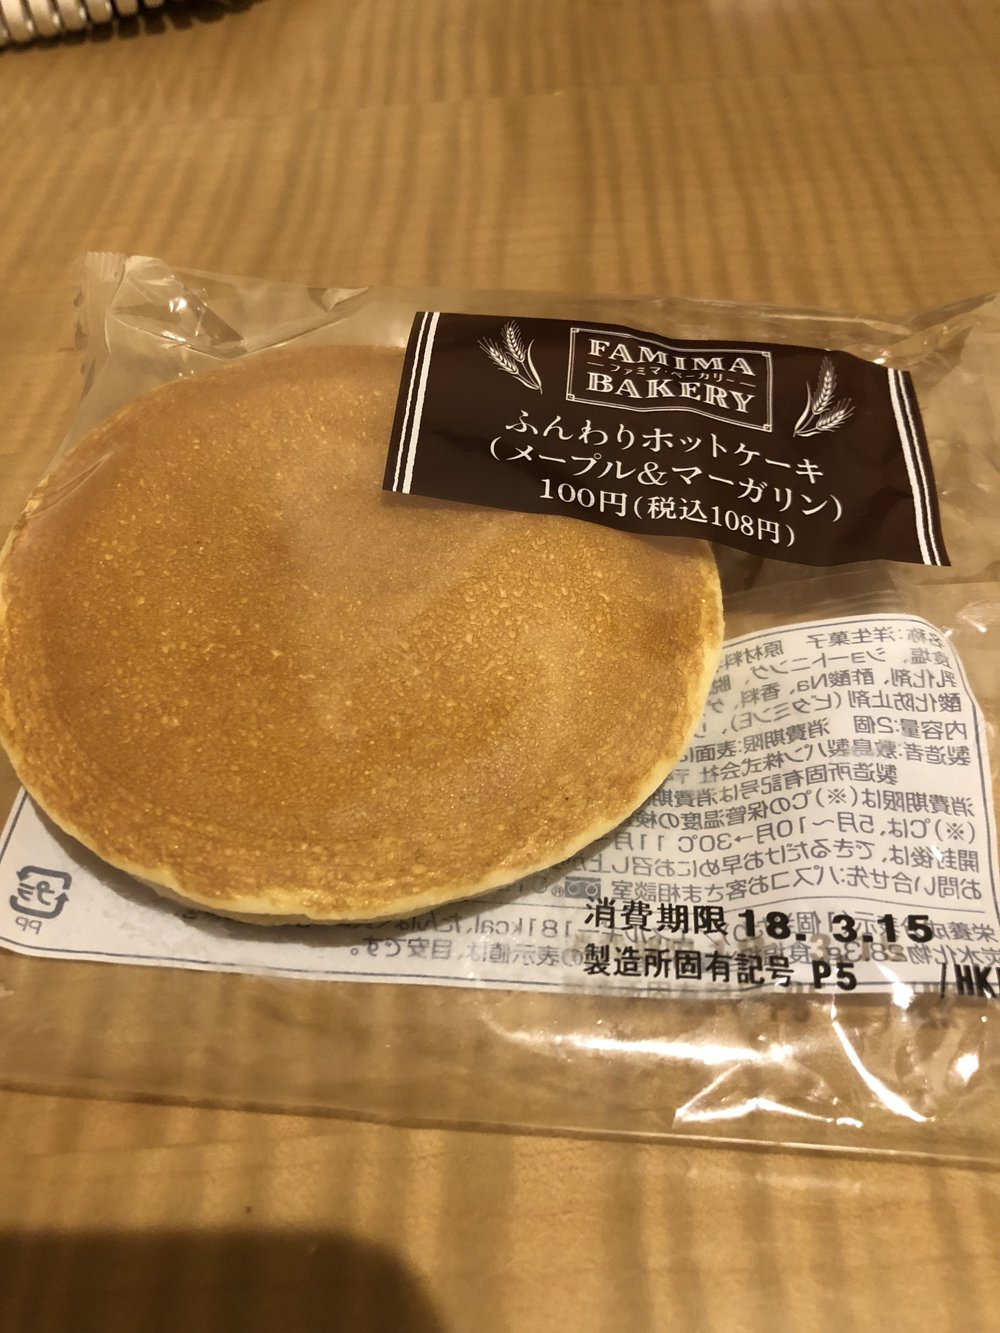 Steve bought these several times from several different convenience stores. They are pancake snacks - complete with butter and a maple syrup jelly inside!